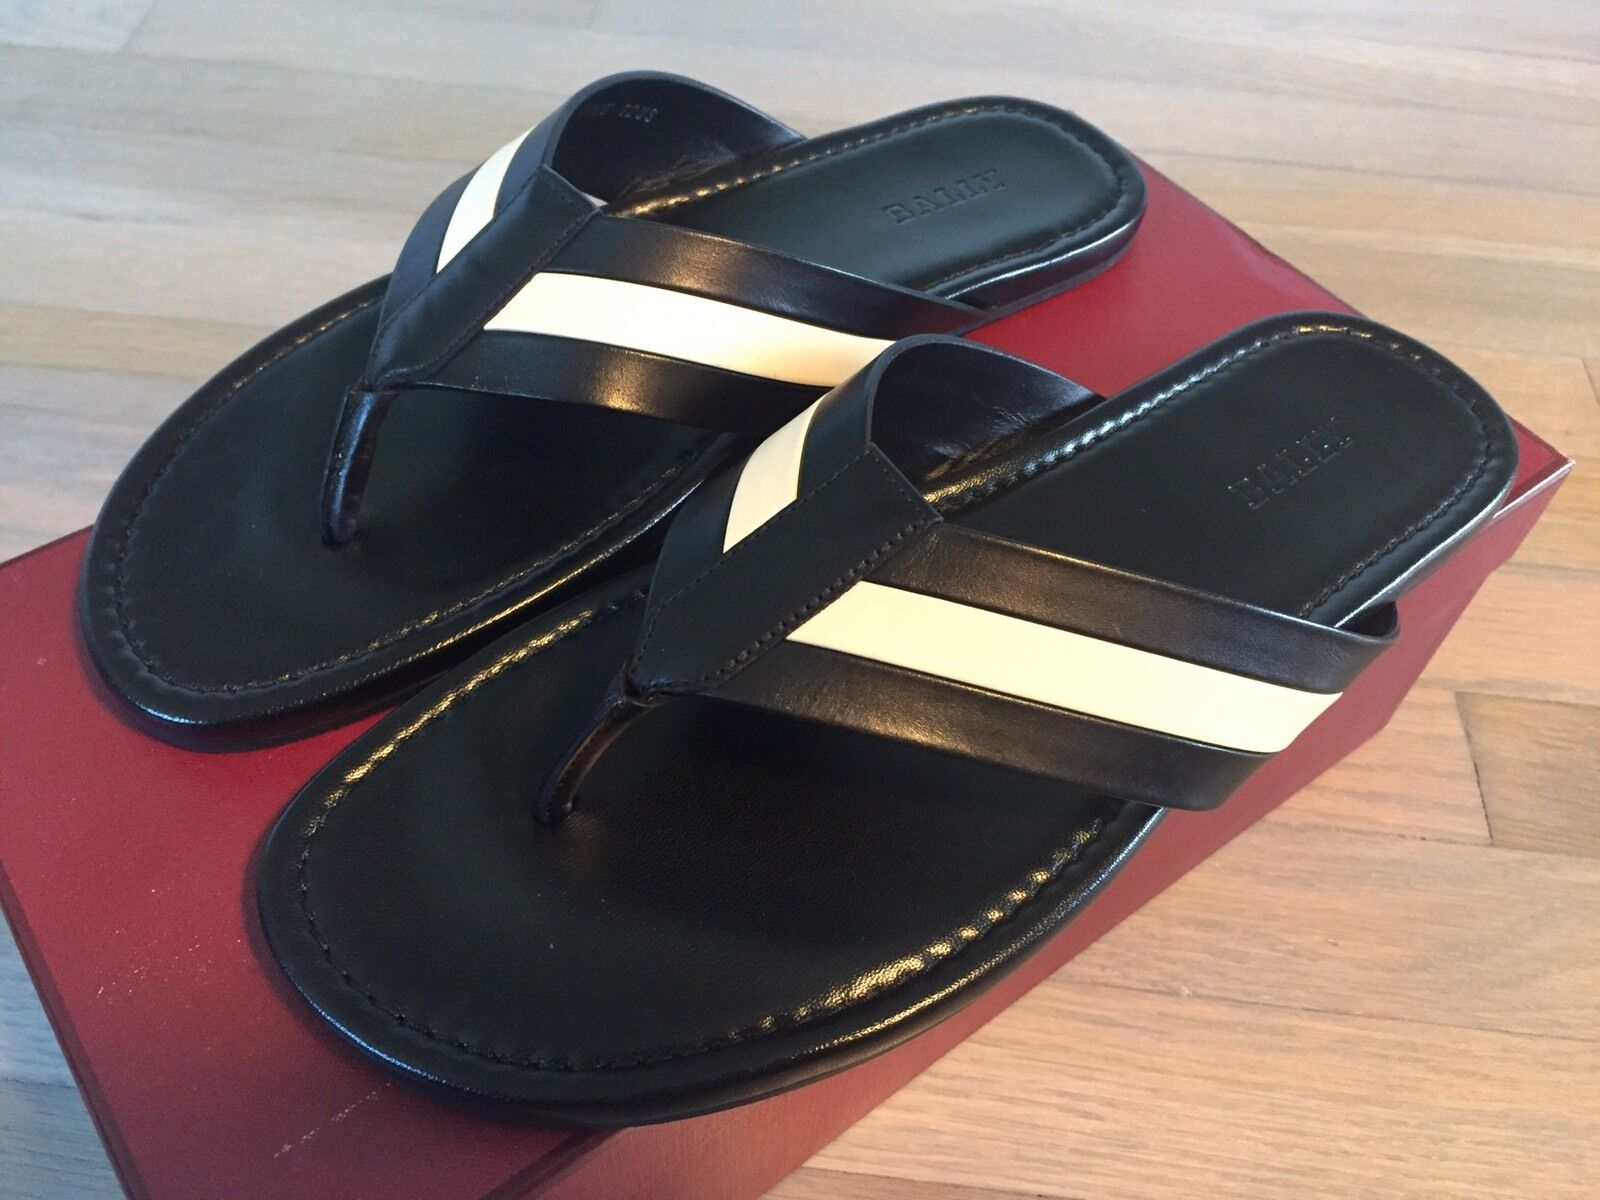 e41d92350420fc 500  Bally Venzio Black Leather Sandals size US 12.5 Made Made Made in  Italy d3a63f ...